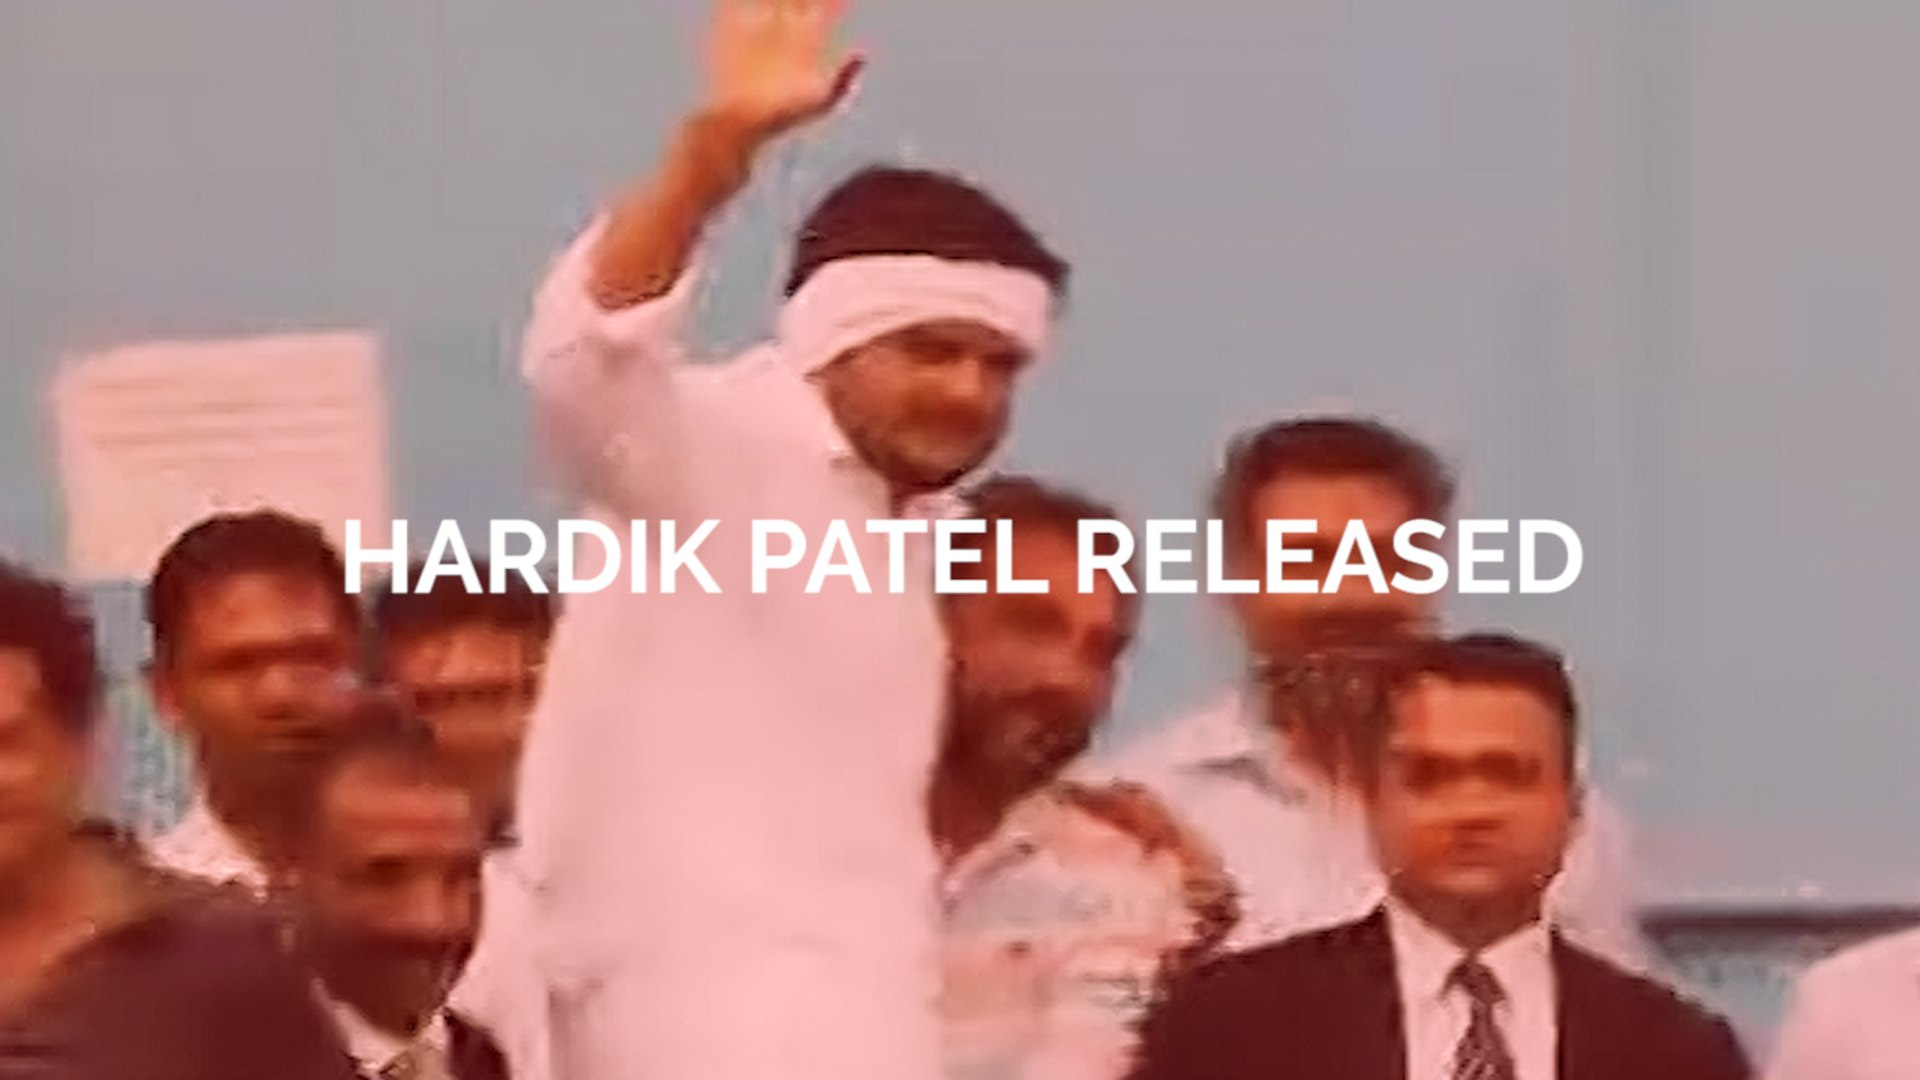 WATCH: Hardik Patel released from jail